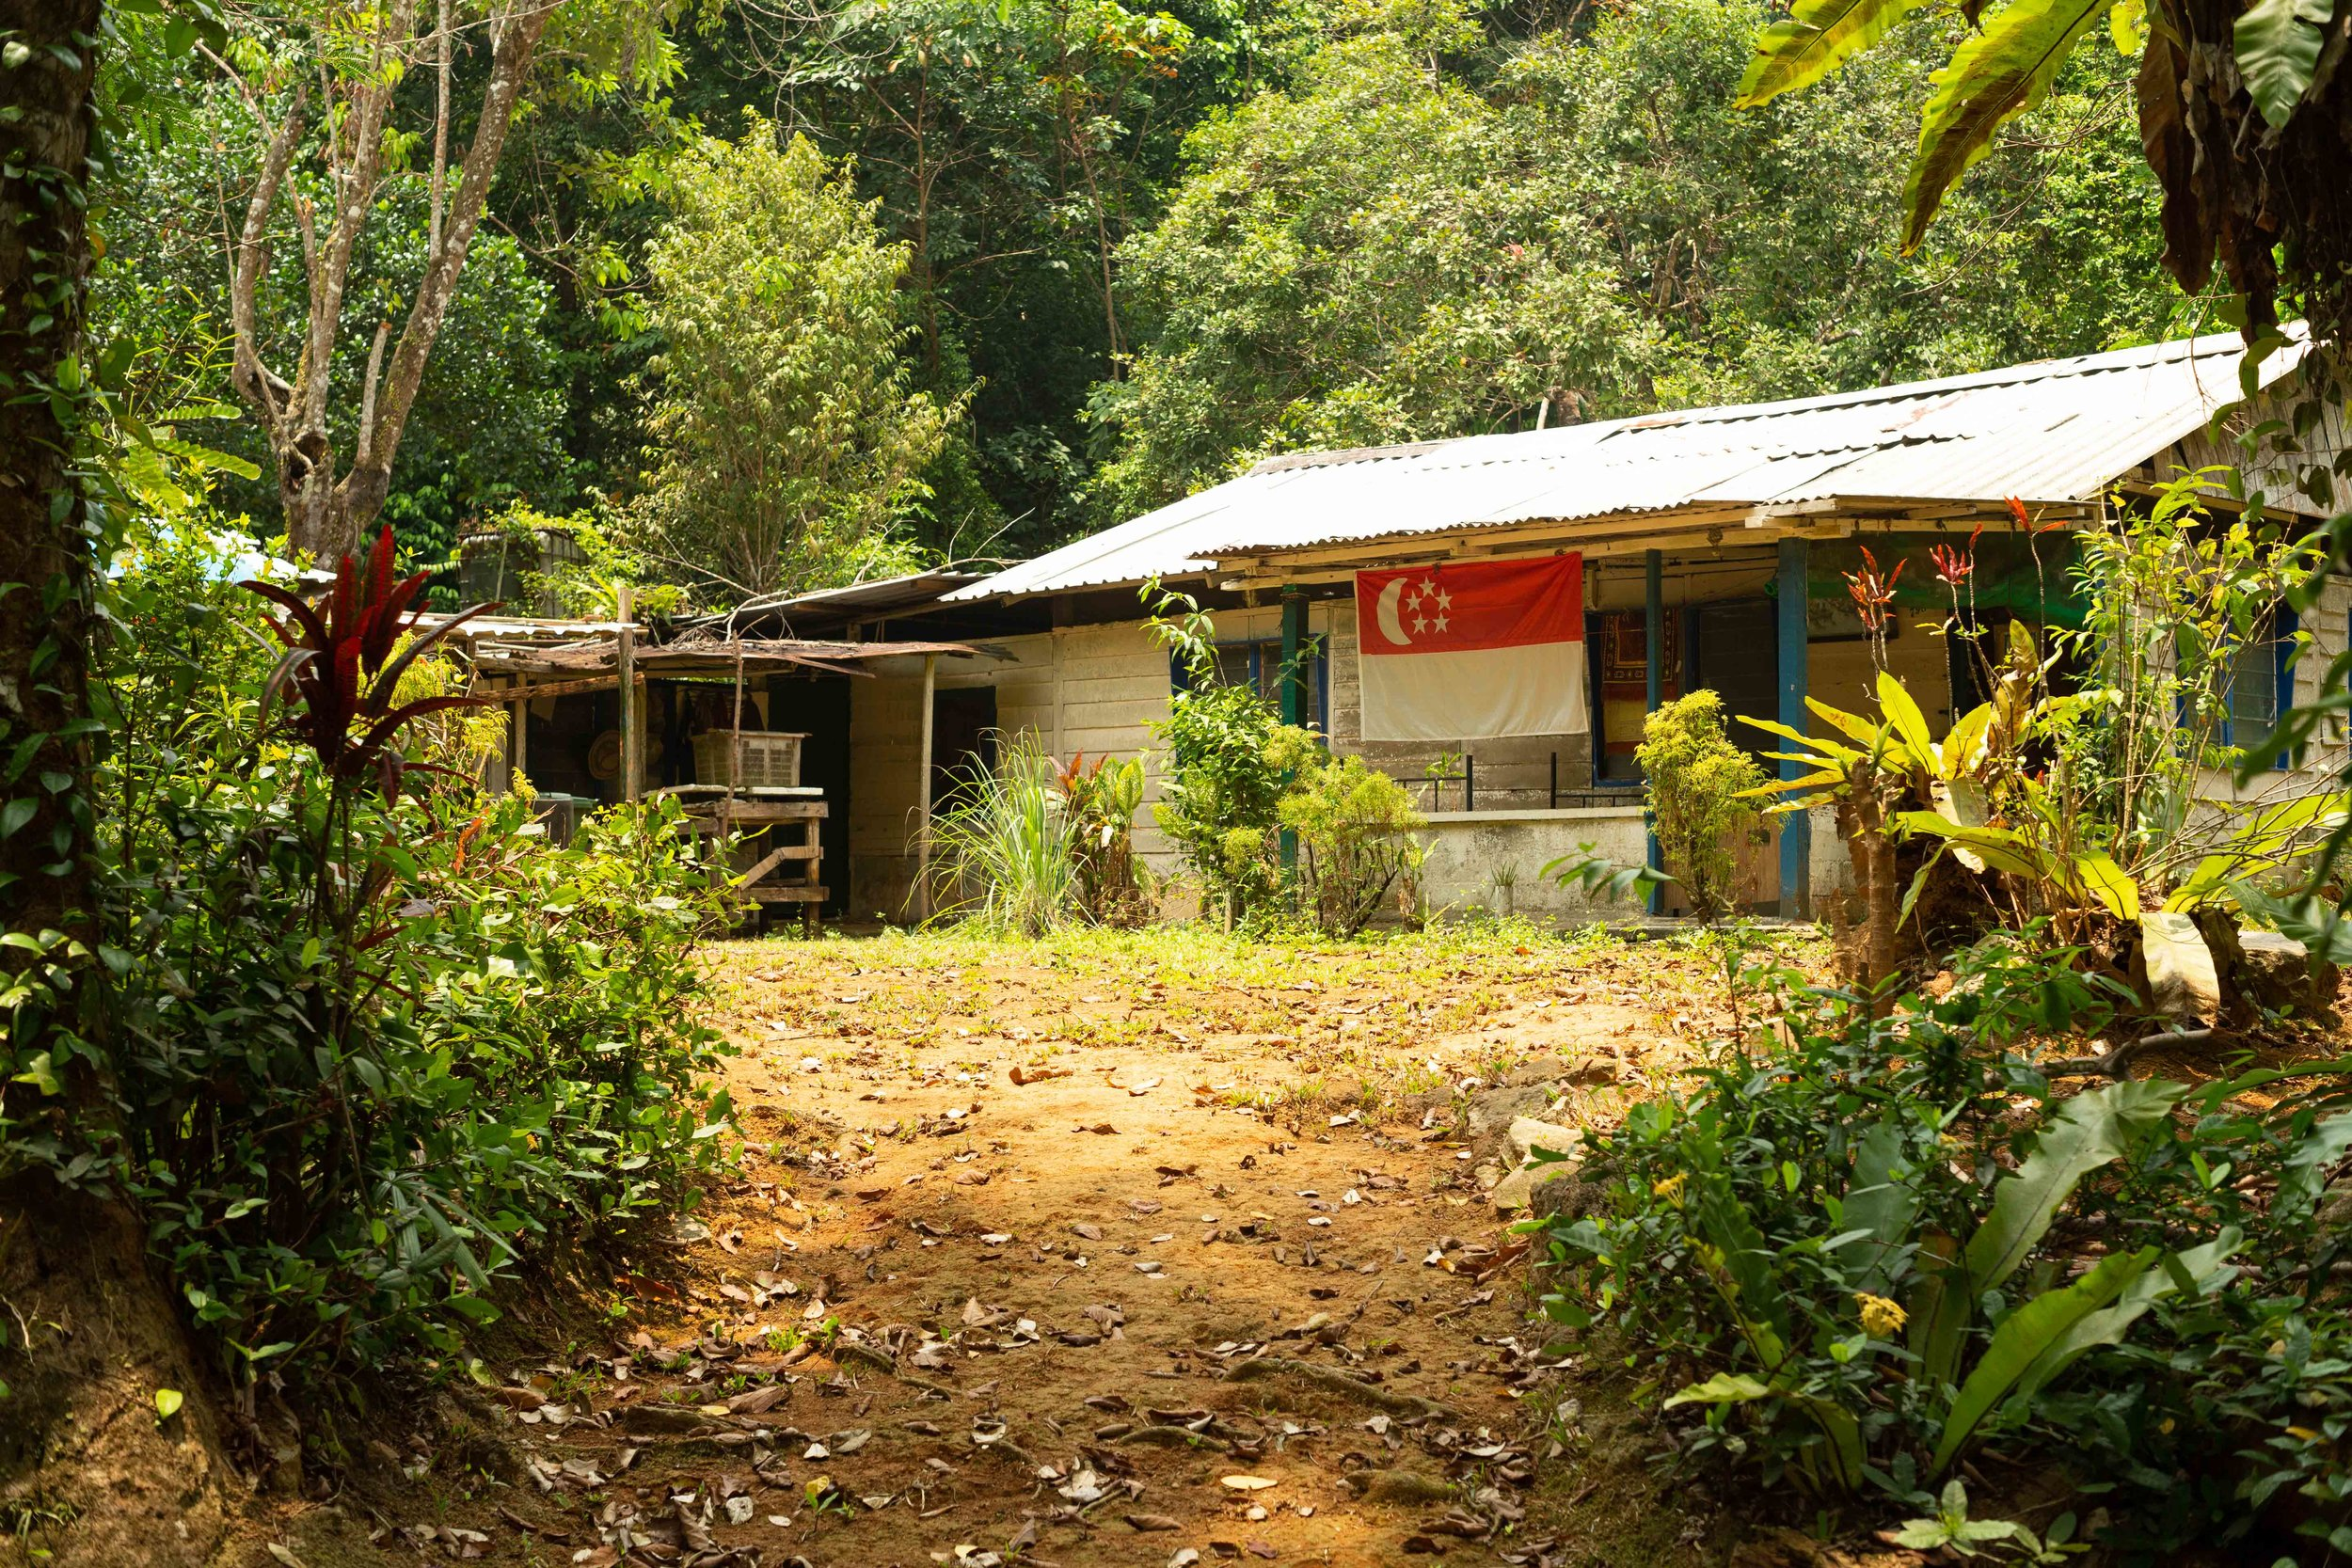 Malay Kampong 190928 214, image by Andrew Campbell Nelson.jpg